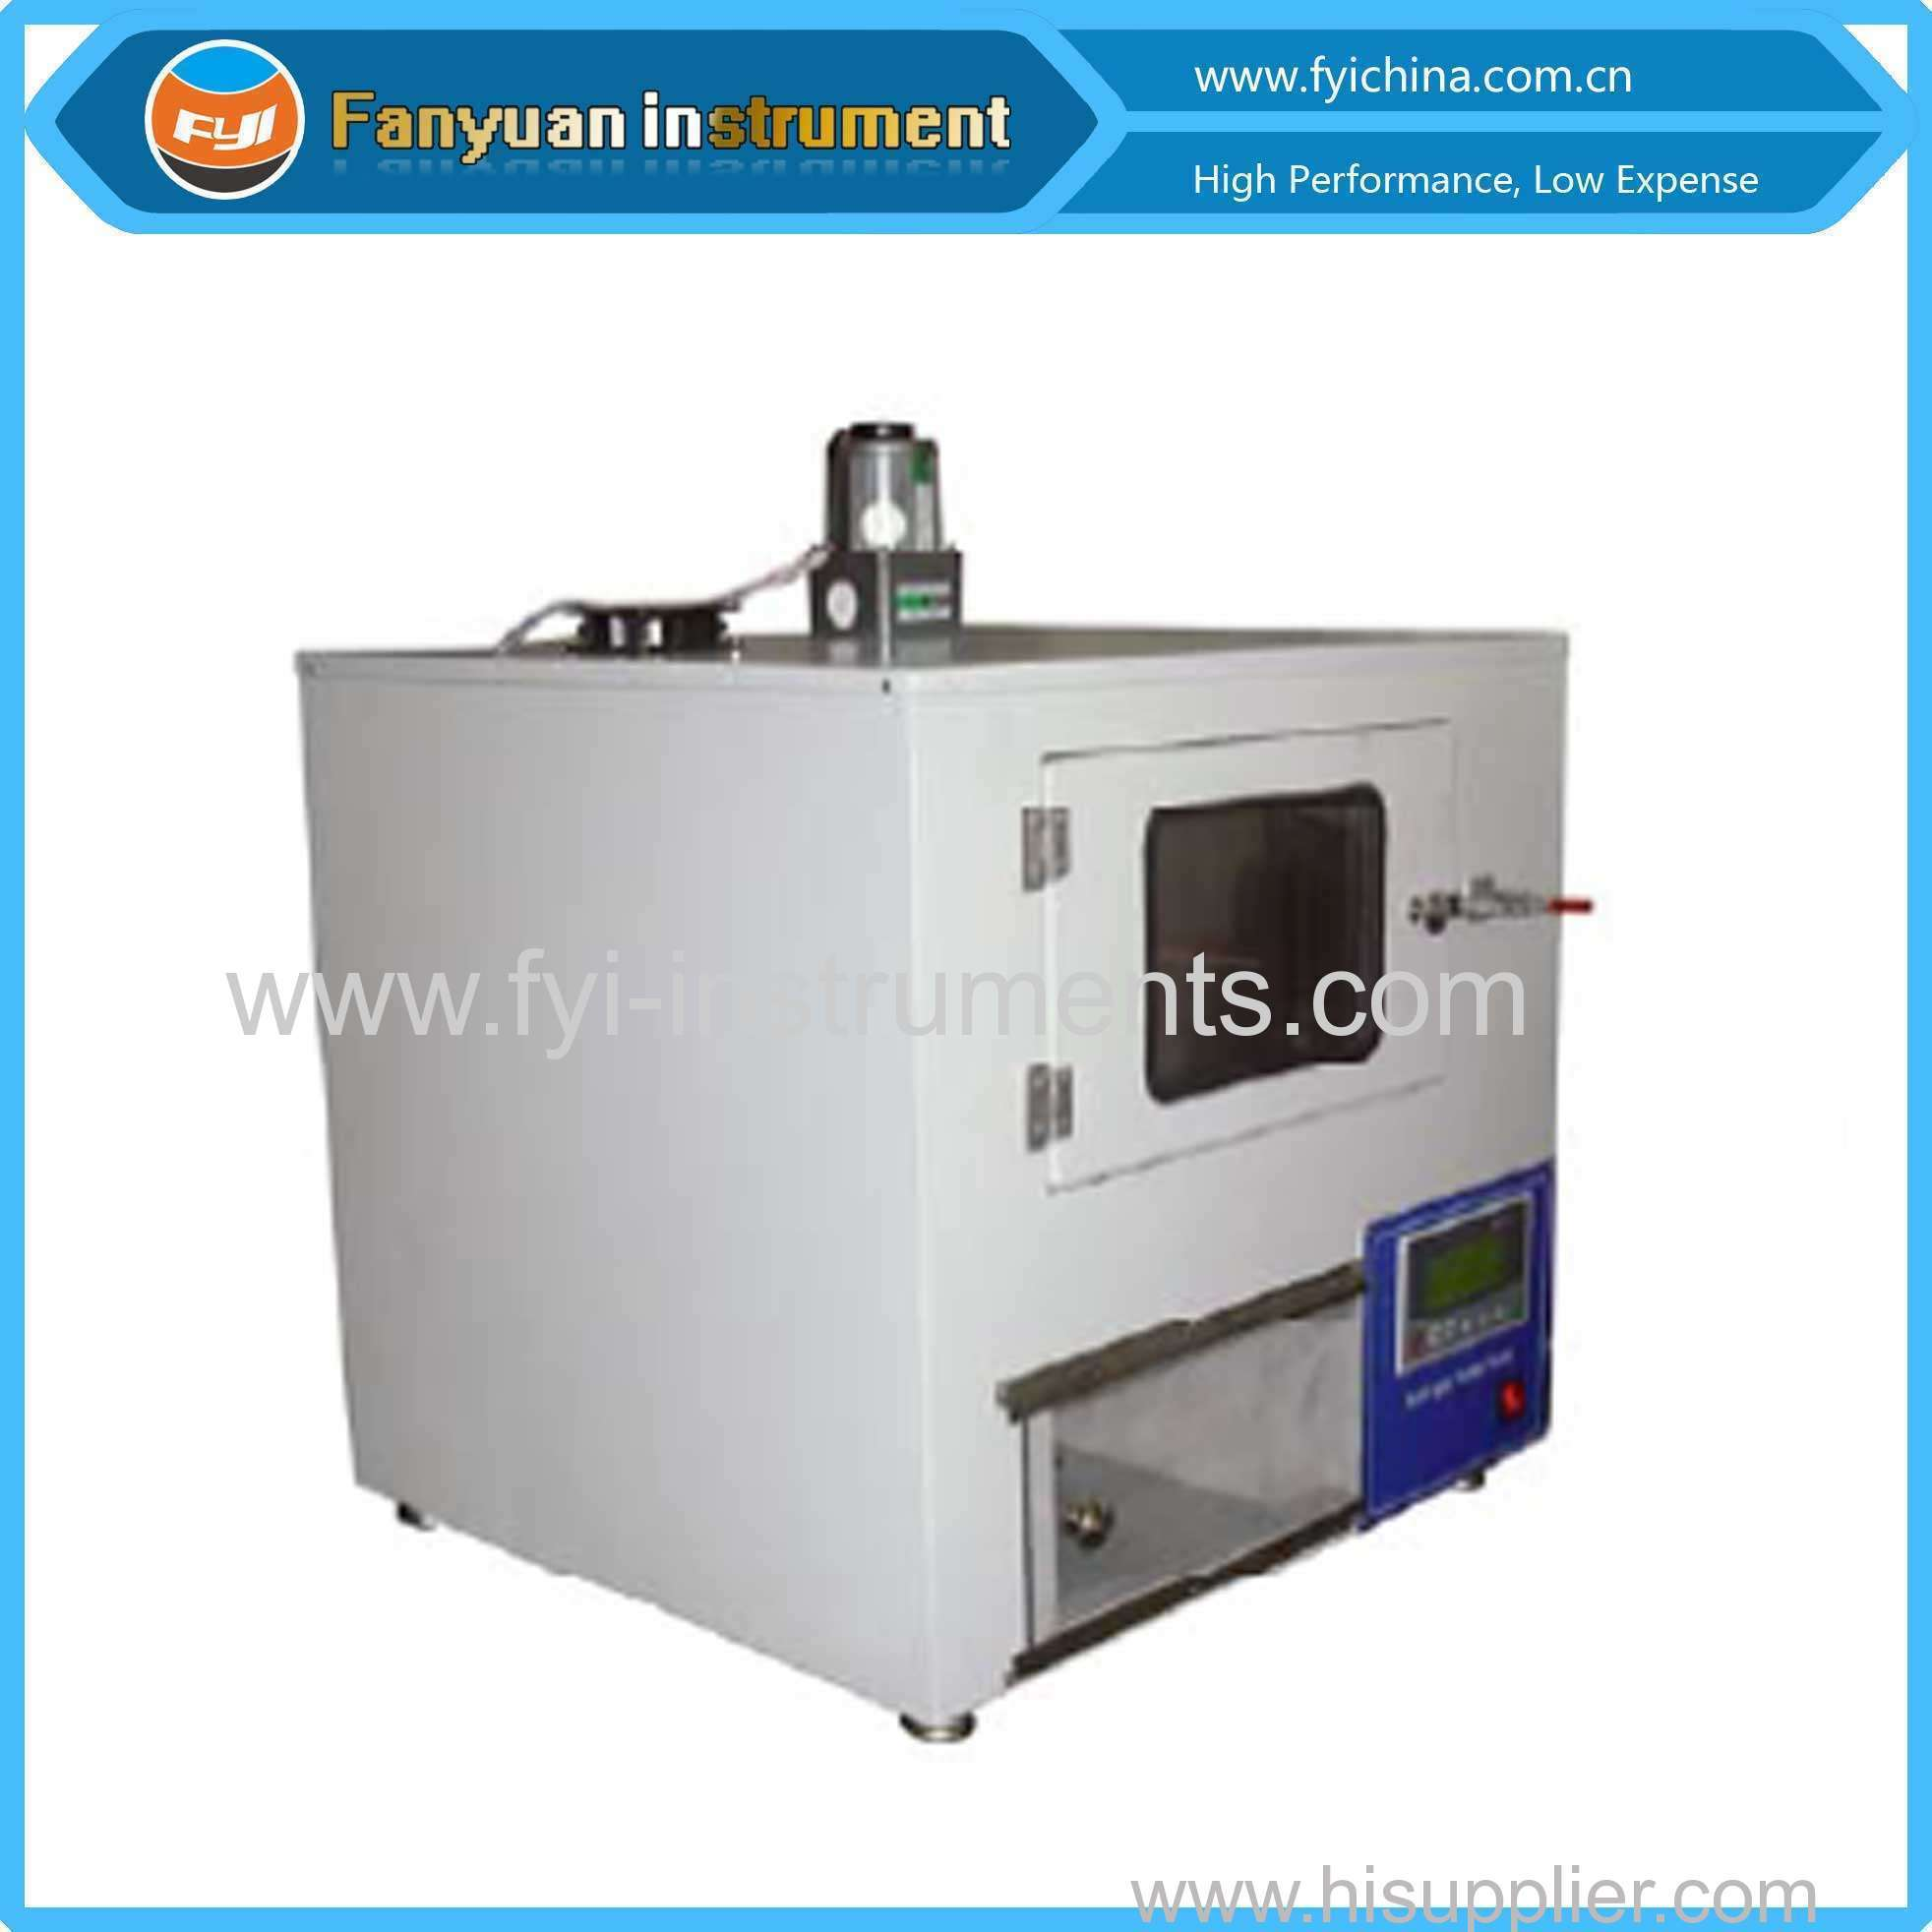 Congraulations ! Our Turkey customer buy our Gas Fume Chamber